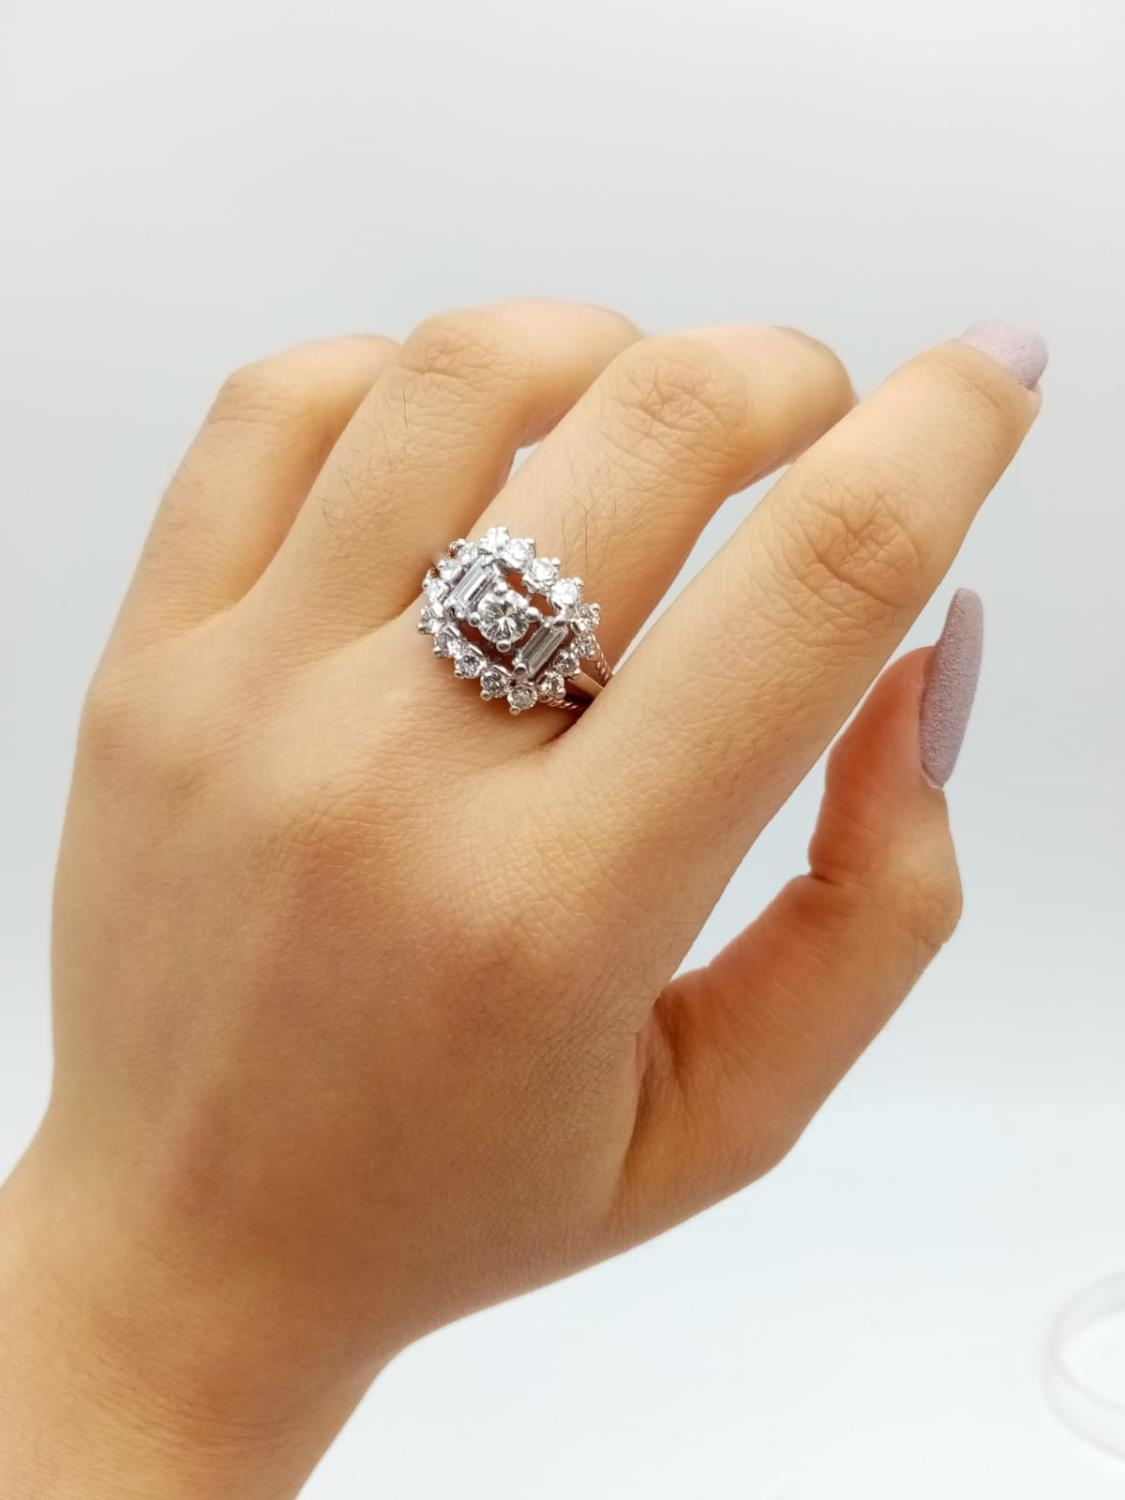 18k white gold diamond ring, WEIGHT 7.6G with over approx 2ct of top quality diamonds, size N1/2 - Image 6 of 6